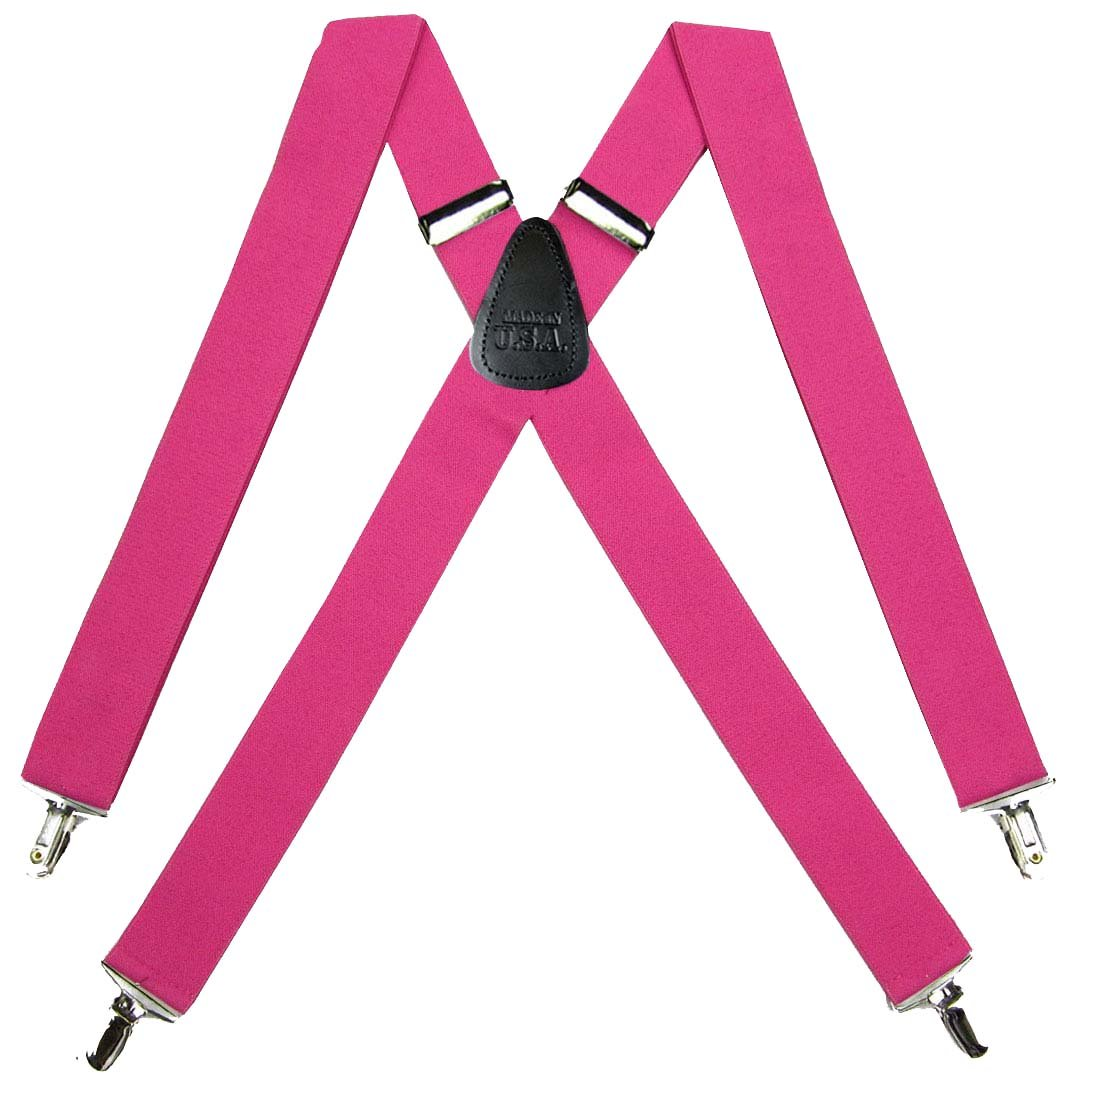 Solid Suspender for Men Made in USA X-Back Genuine Leather Trimmed clip end tuxedo suspenders Many solid colors available